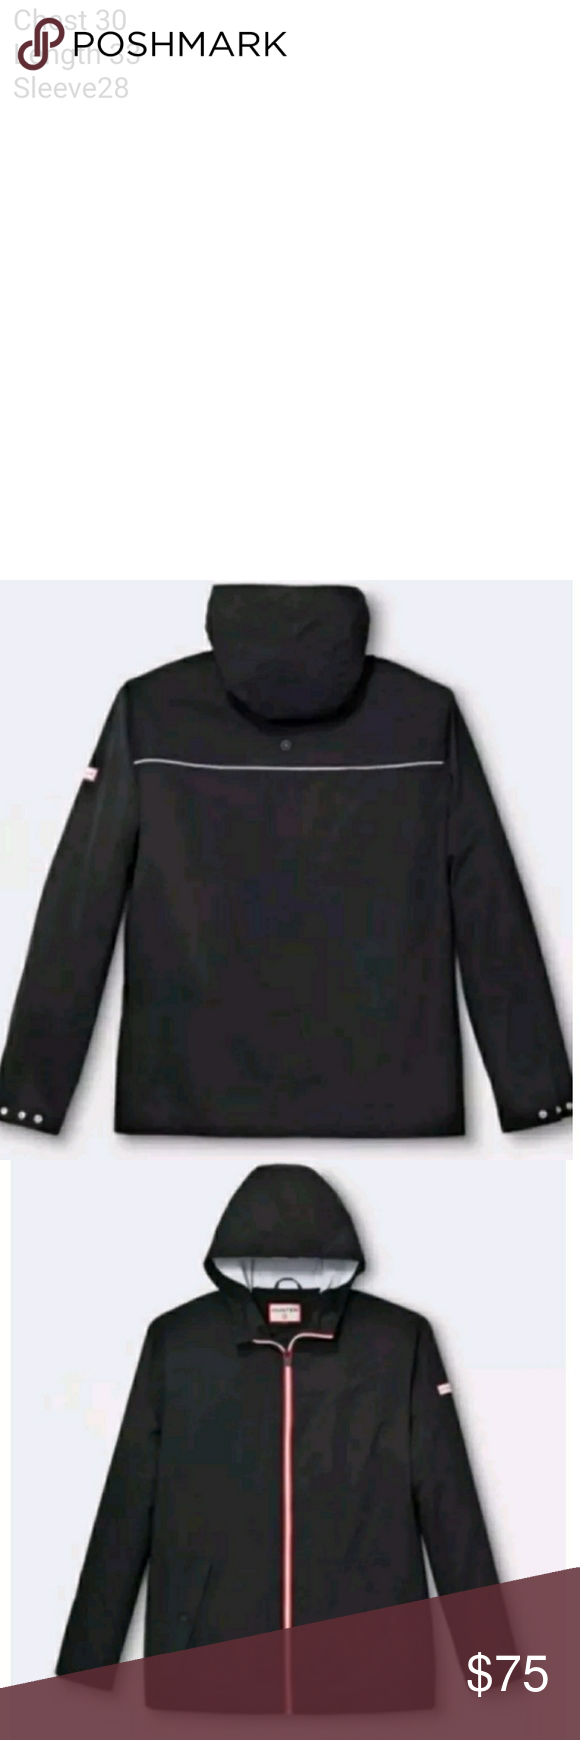 f880cc466 Hunter for Target black packable Windbreaker Brand new with tags ...